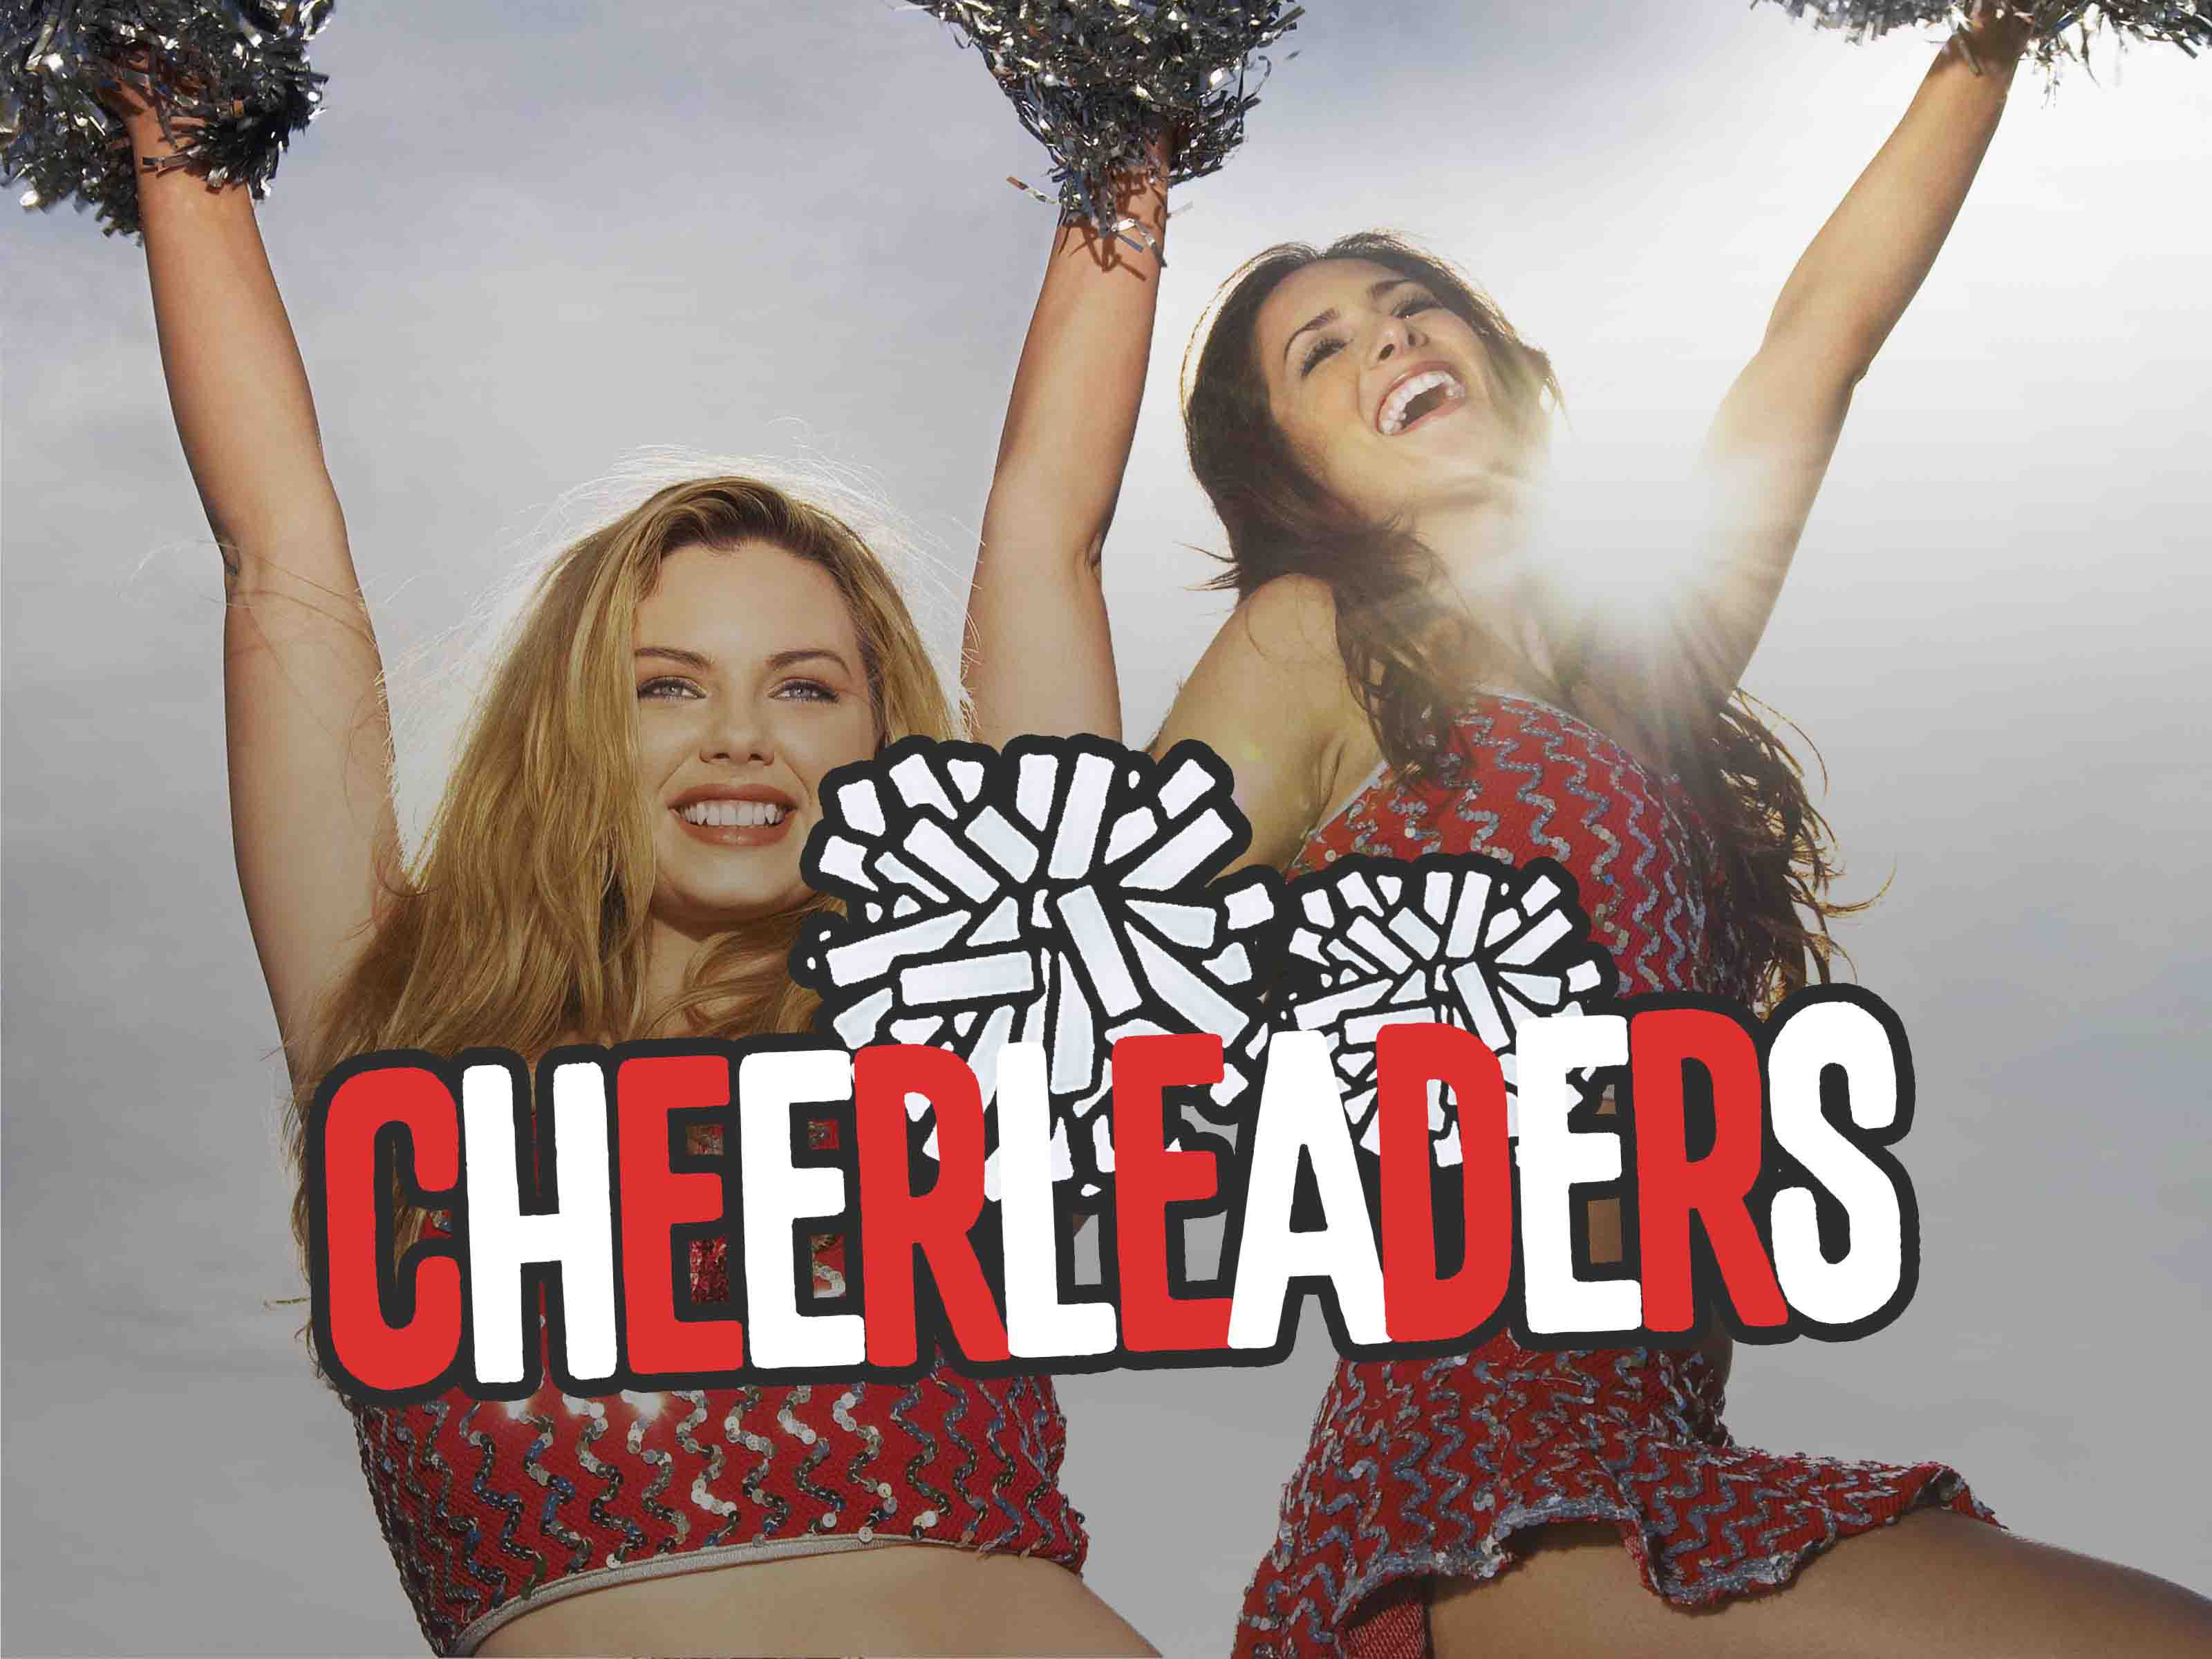 Hen Party Themes - Cheerleaders